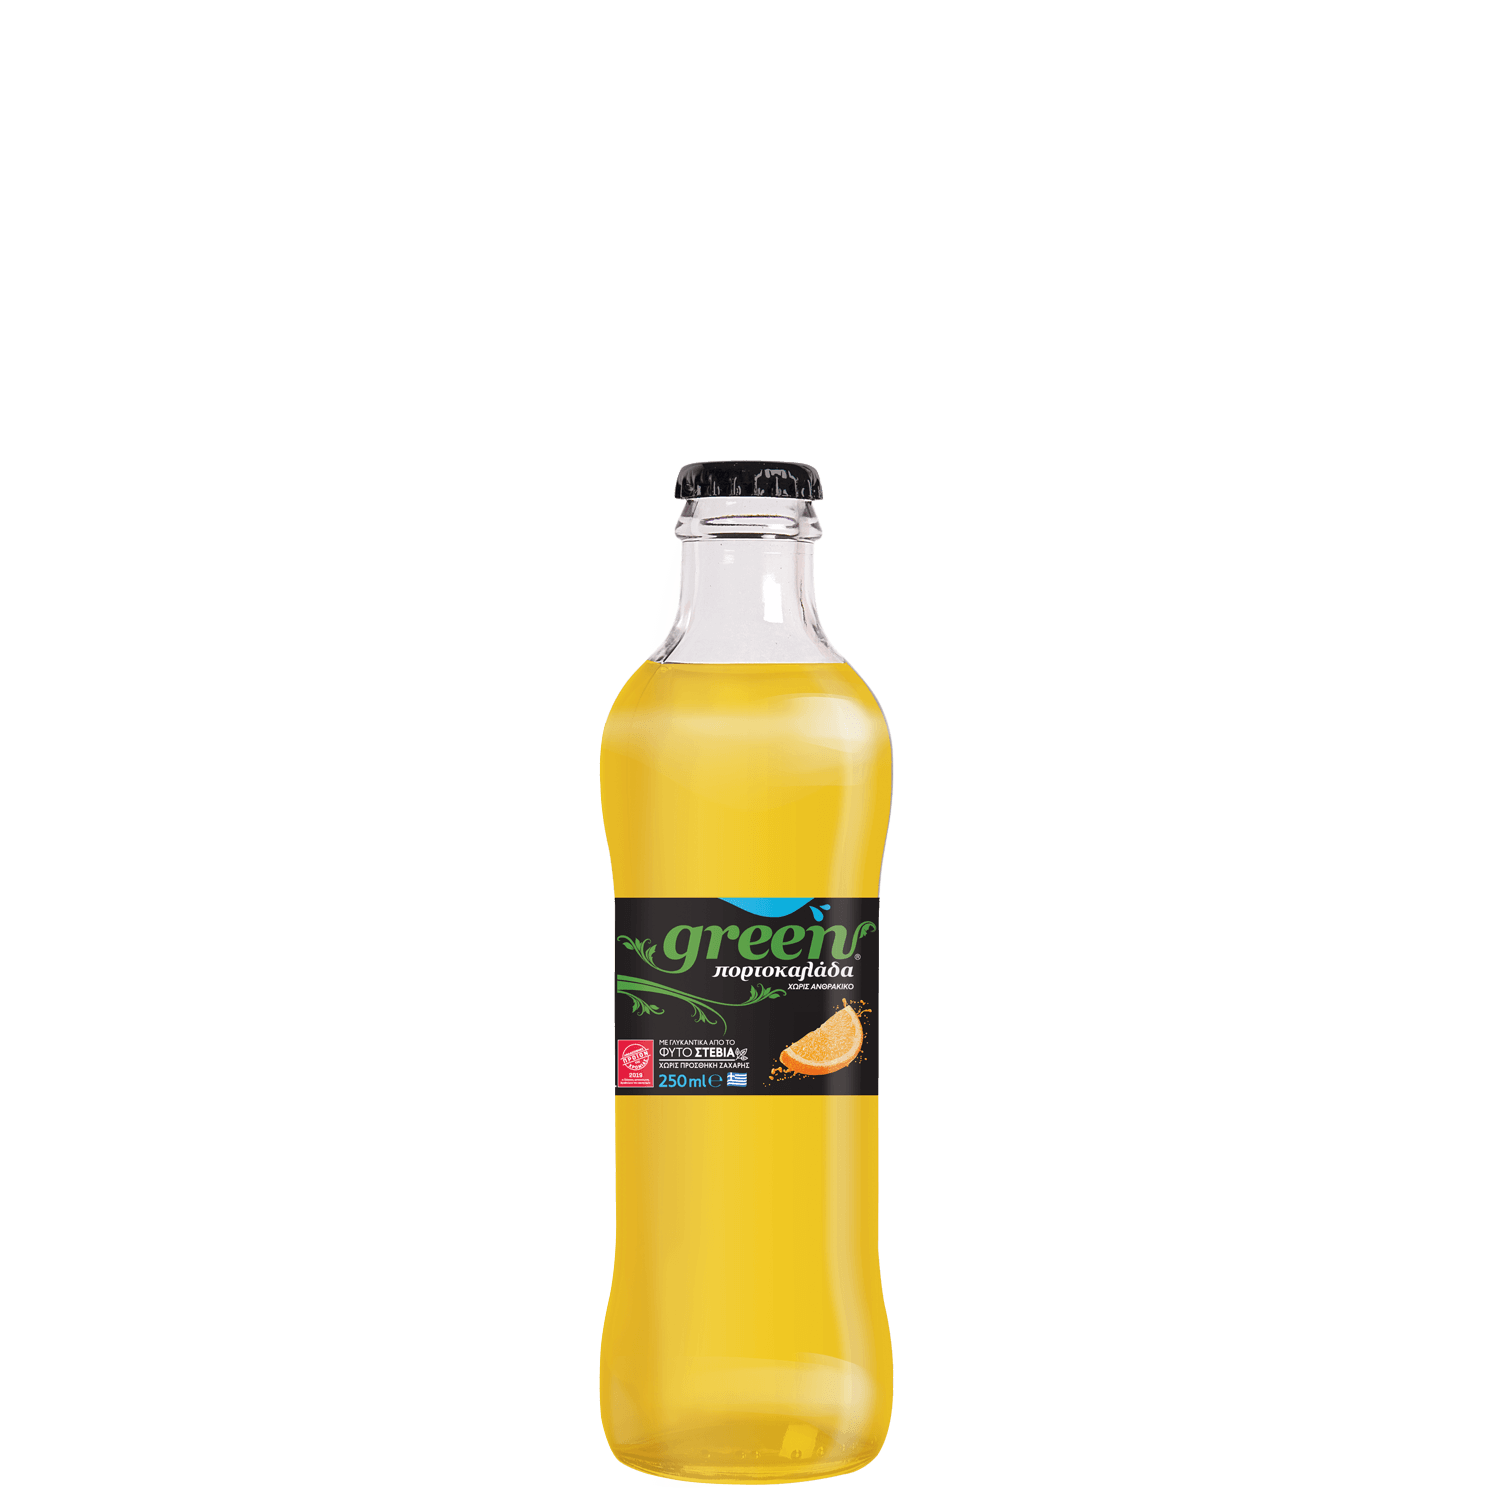 Green Orange Nc - 250ml - Glass Bottle